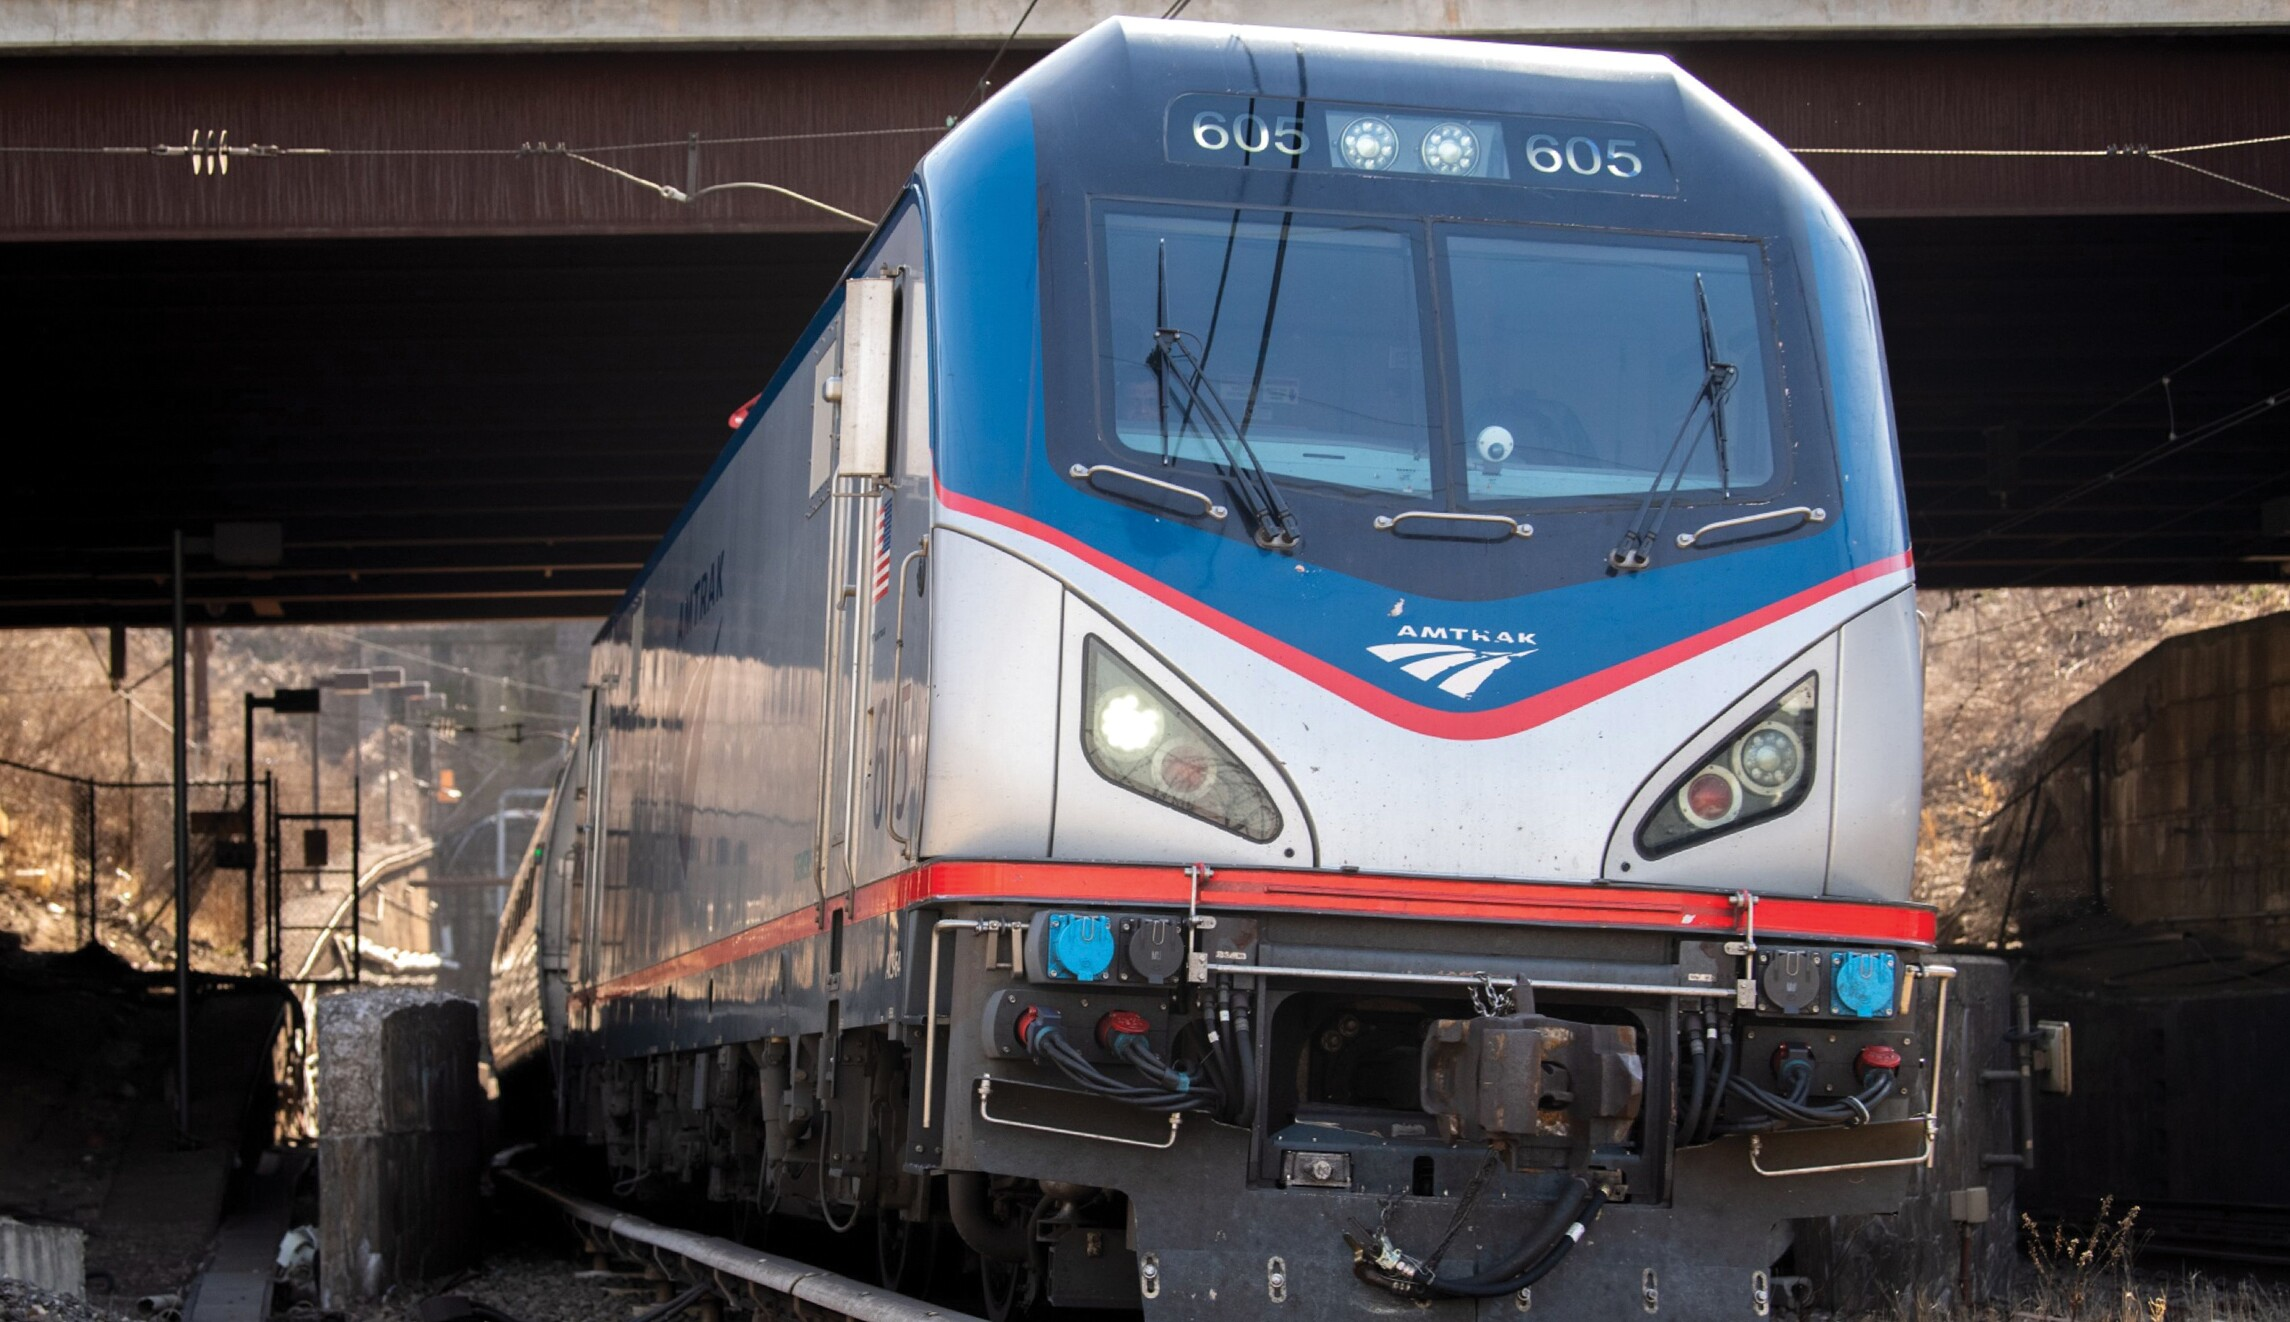 Democratic lawmakers: Amtrak's new arbitration policy will 'stack the deck' against consumers